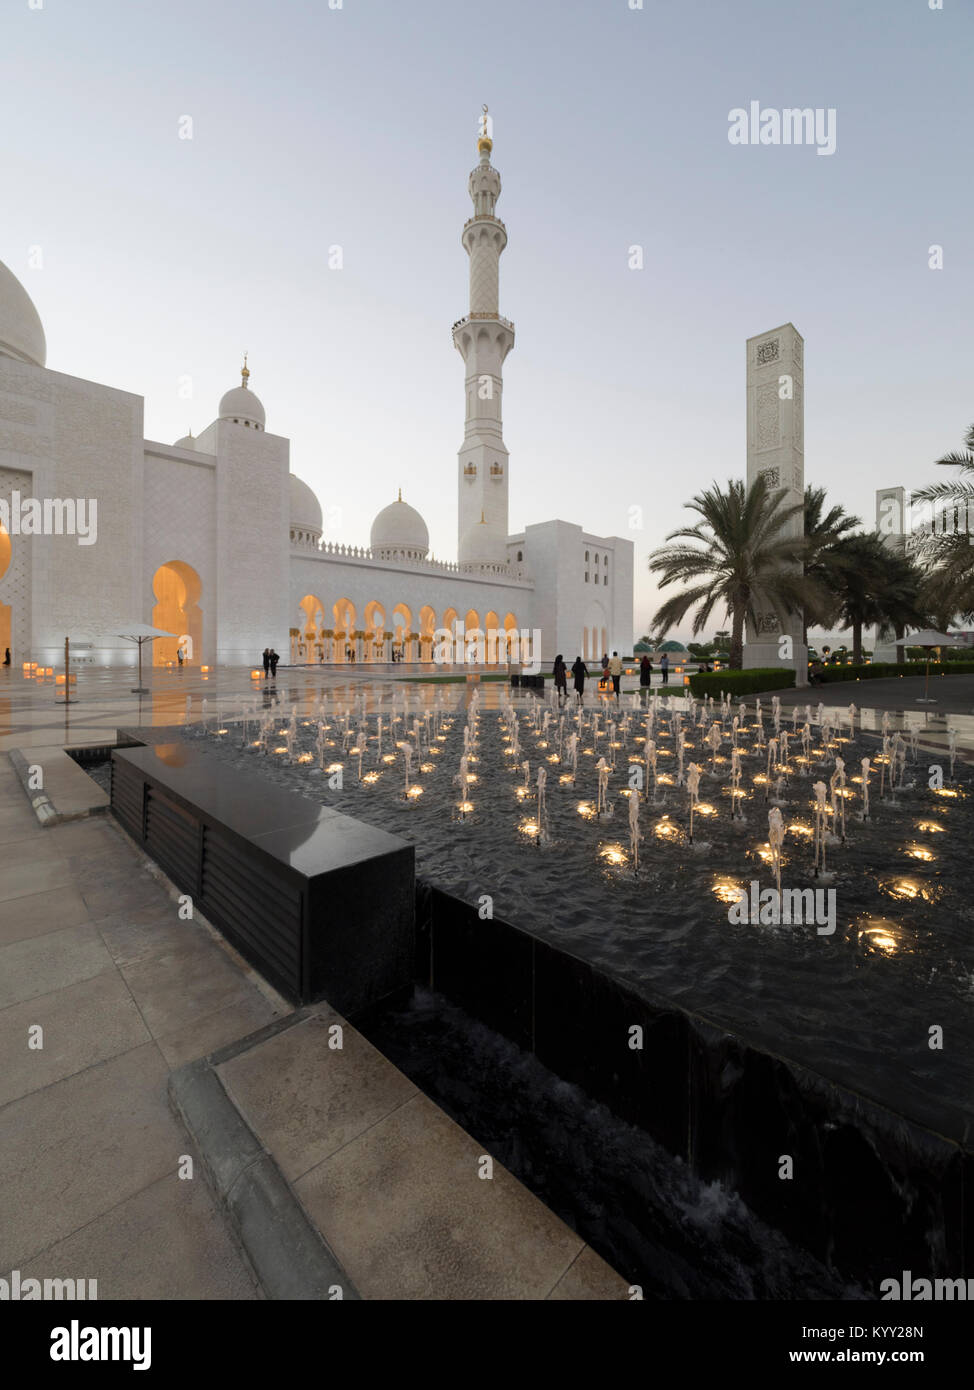 Fountain in front of Sheikh Zayed Mosque - Stock Image